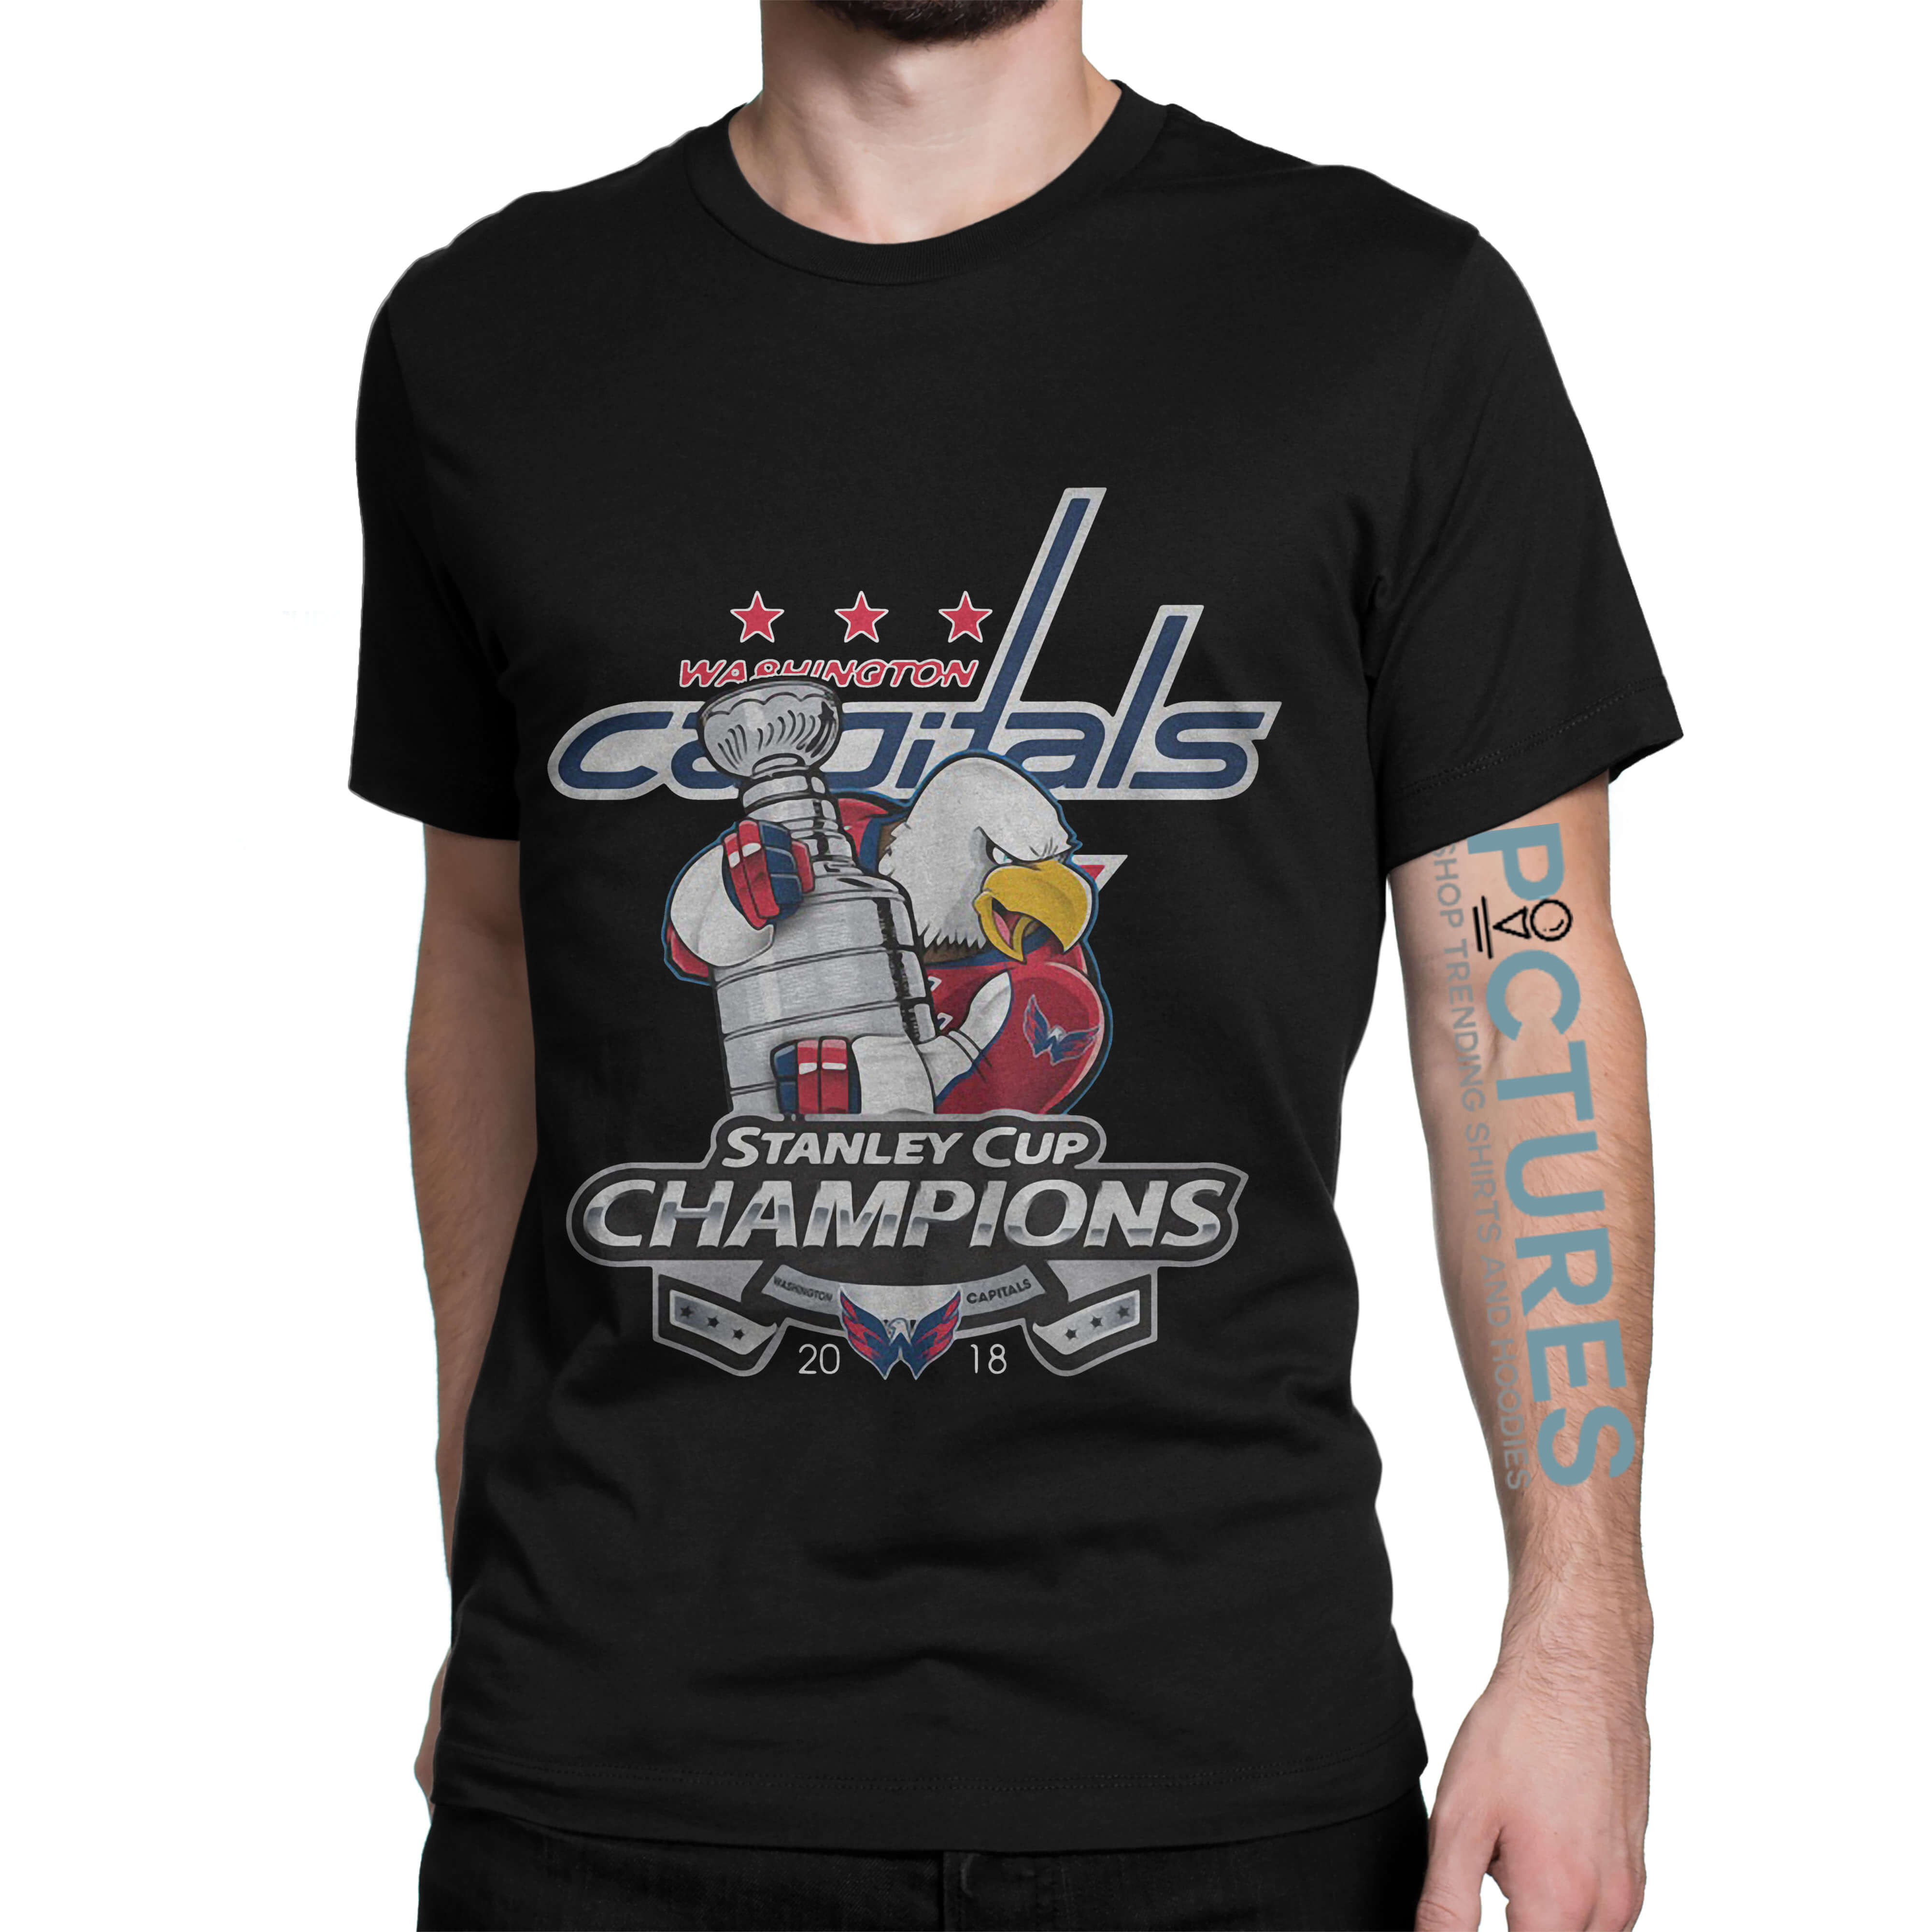 Washington Capitals' Stanley Cup Champions shirt